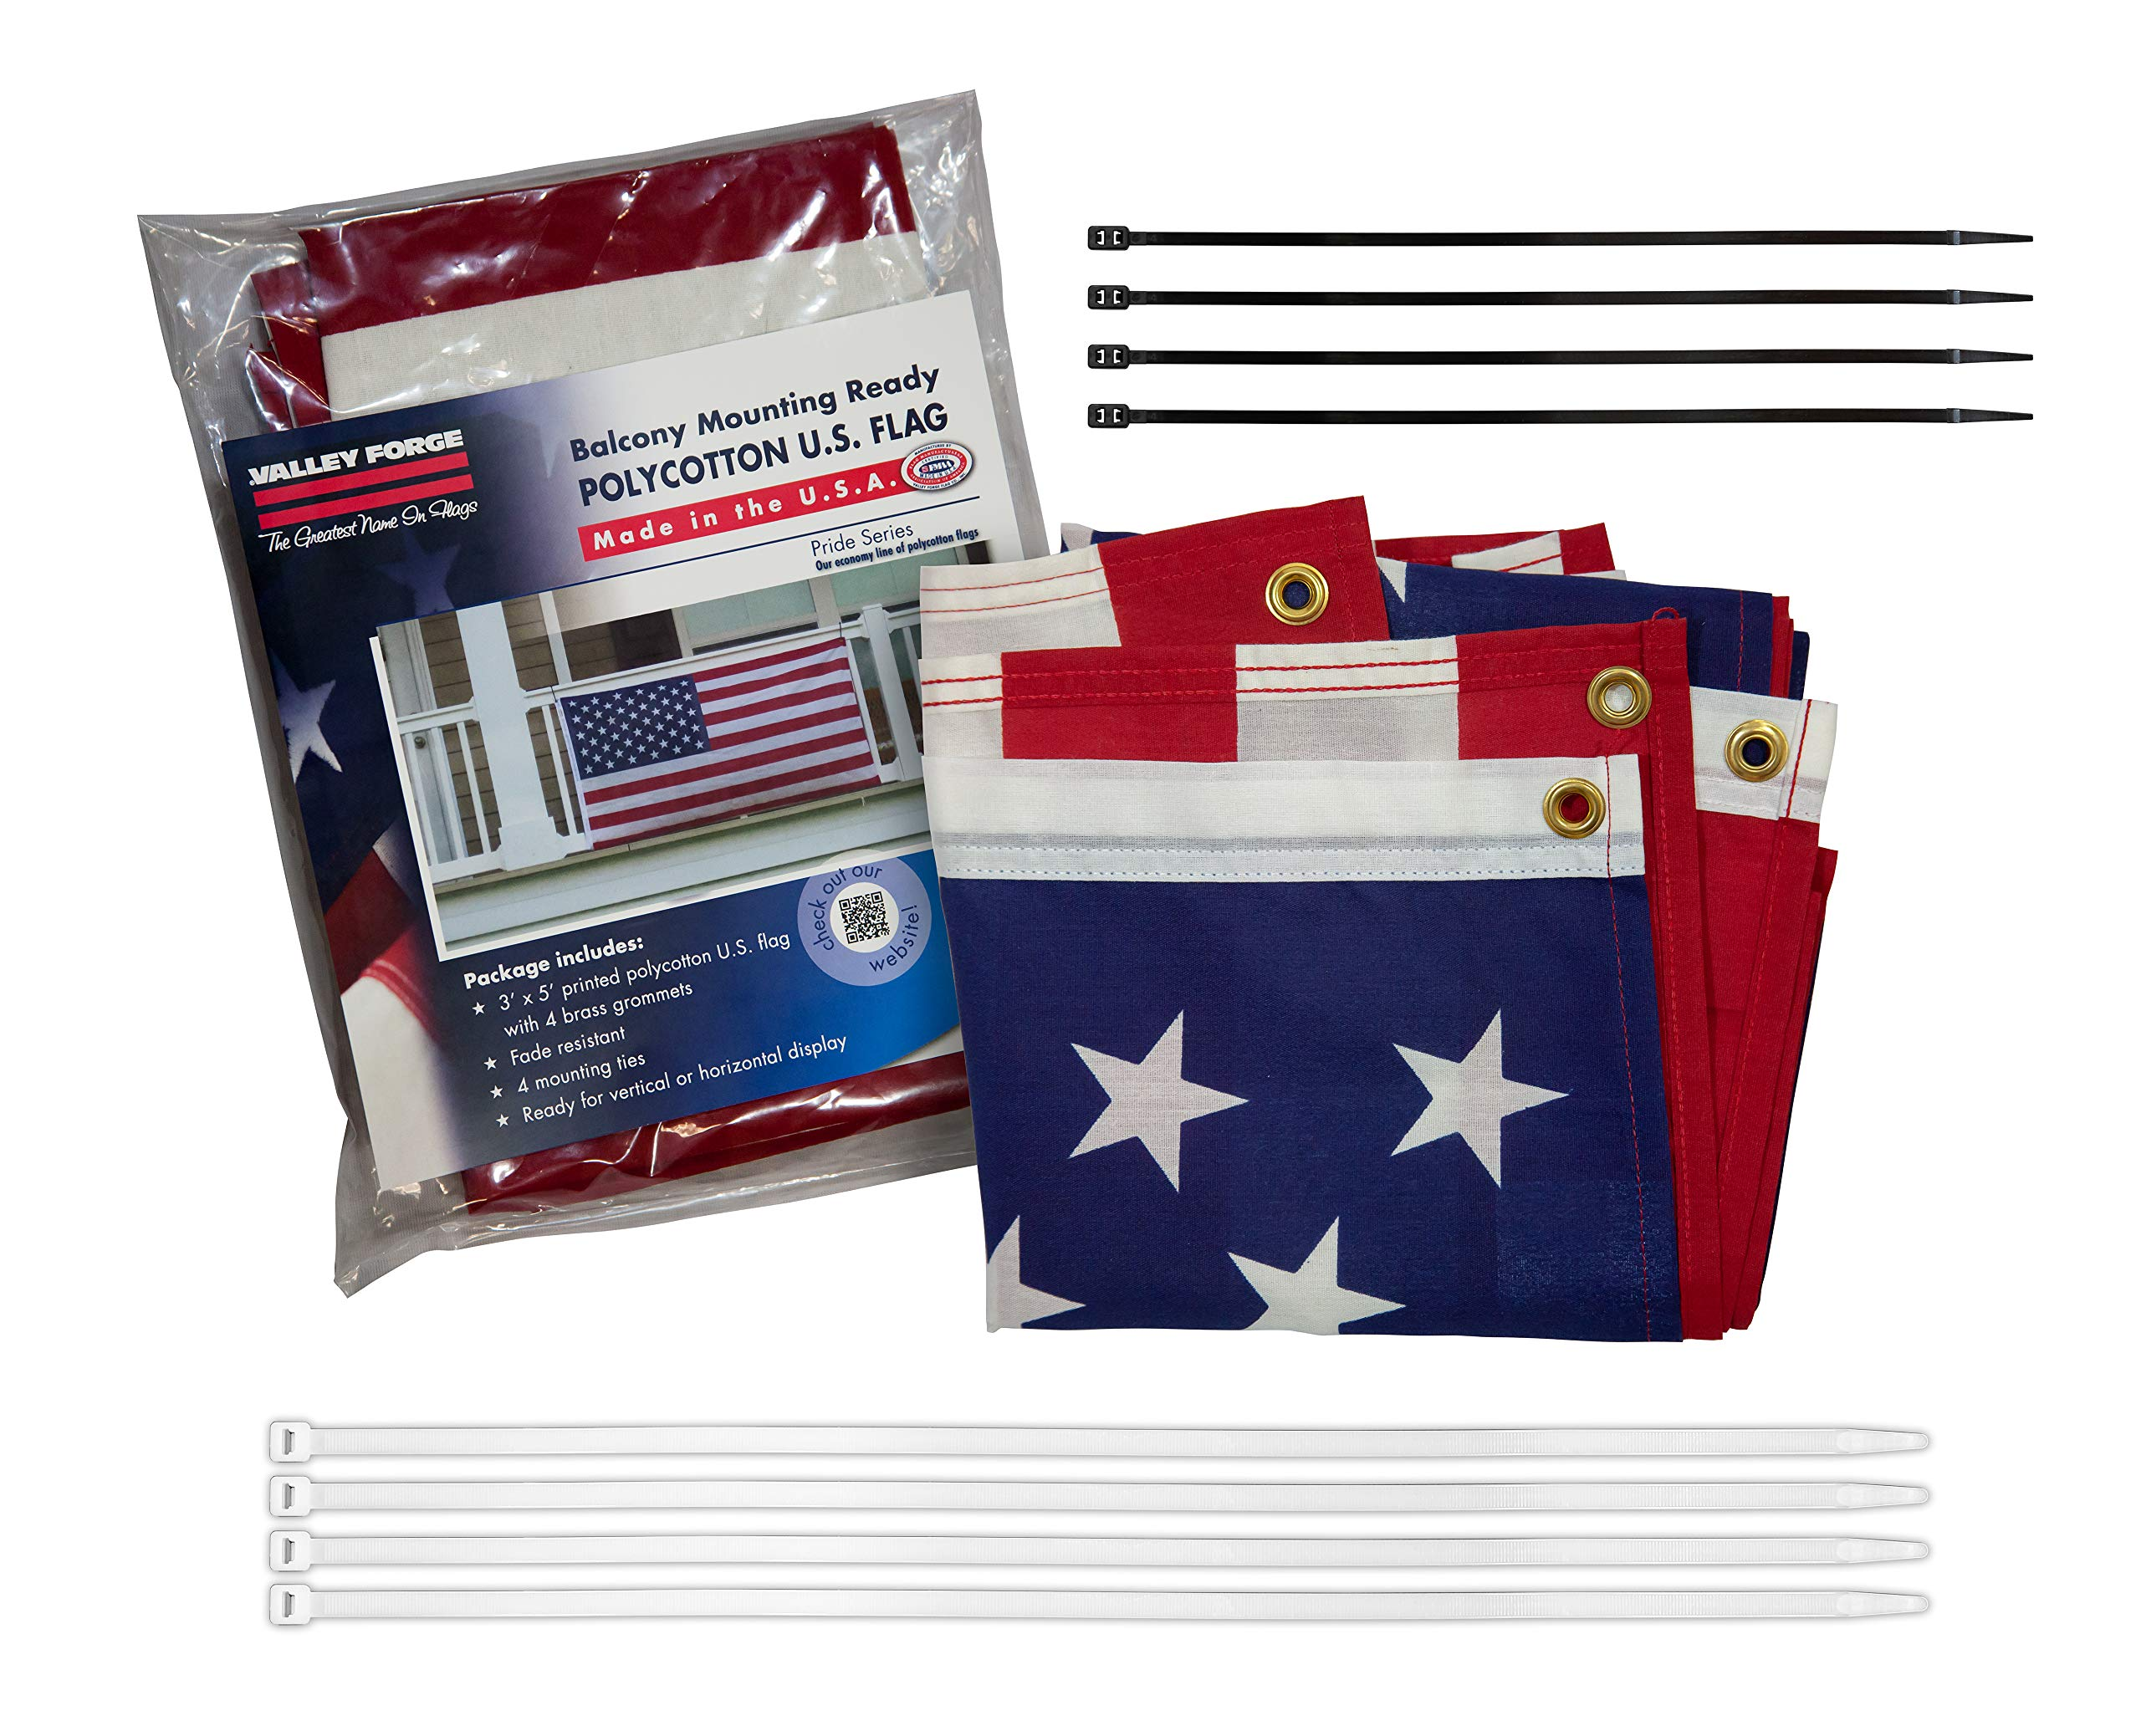 Valley Forge, American Flag Kit, Polycotton, 3'x5', 100% Made in USA, Balcony Mounting Kit, Heavy Duty Brass Grommets, Fasteners